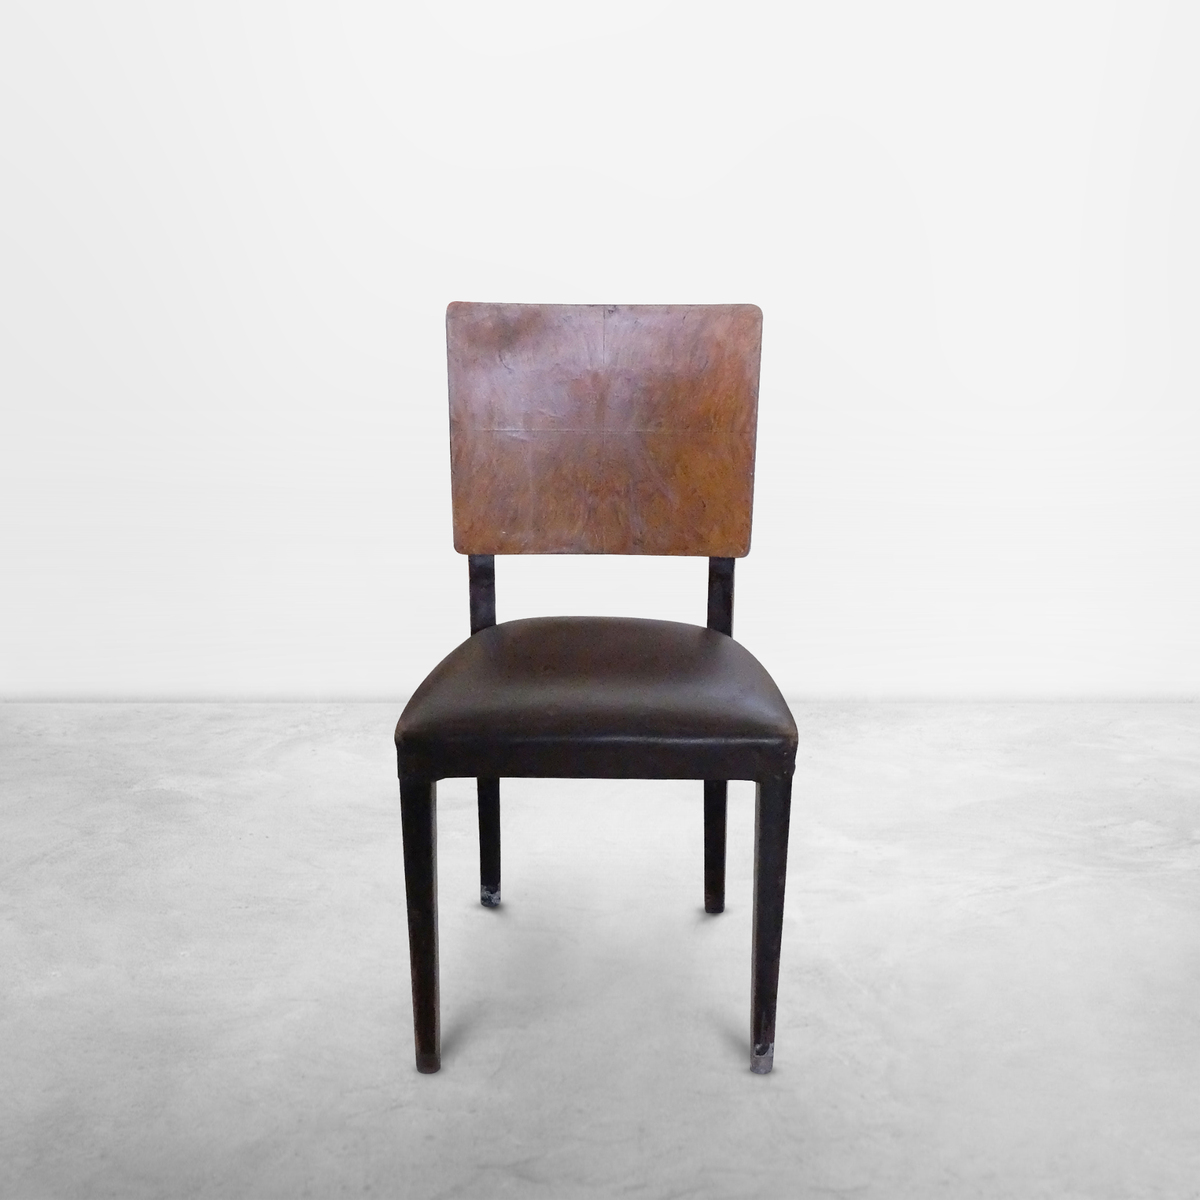 French Mid-Century Modern, Set of 4 Chairs Attributed to Andre Sornay, 1940s